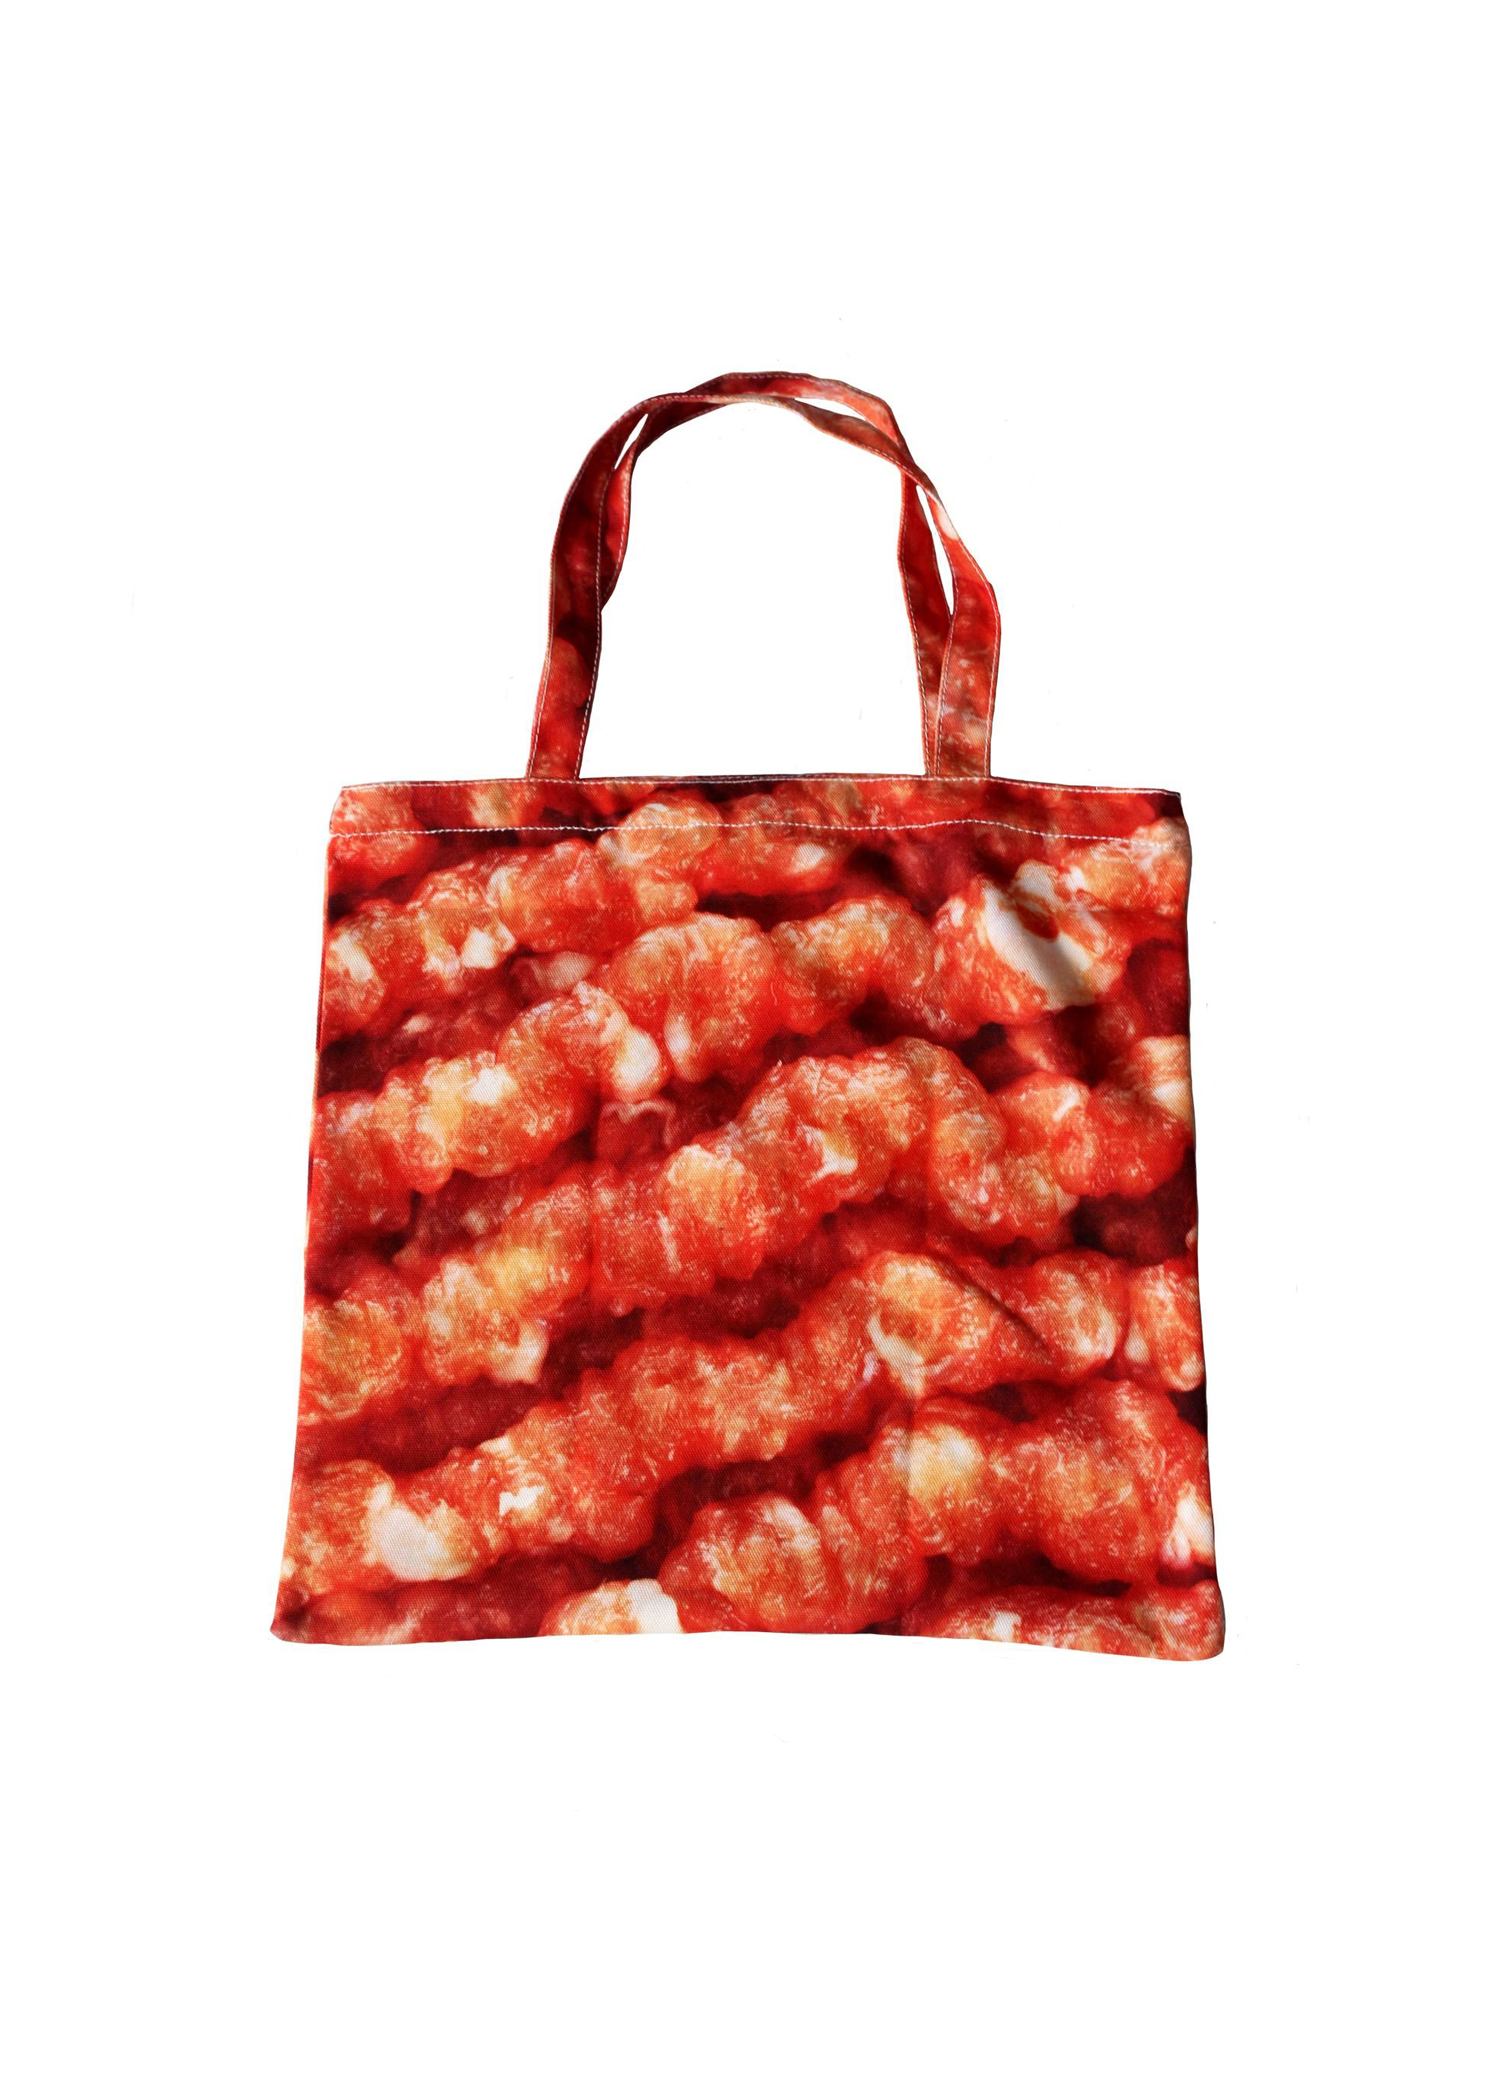 gross tote bag